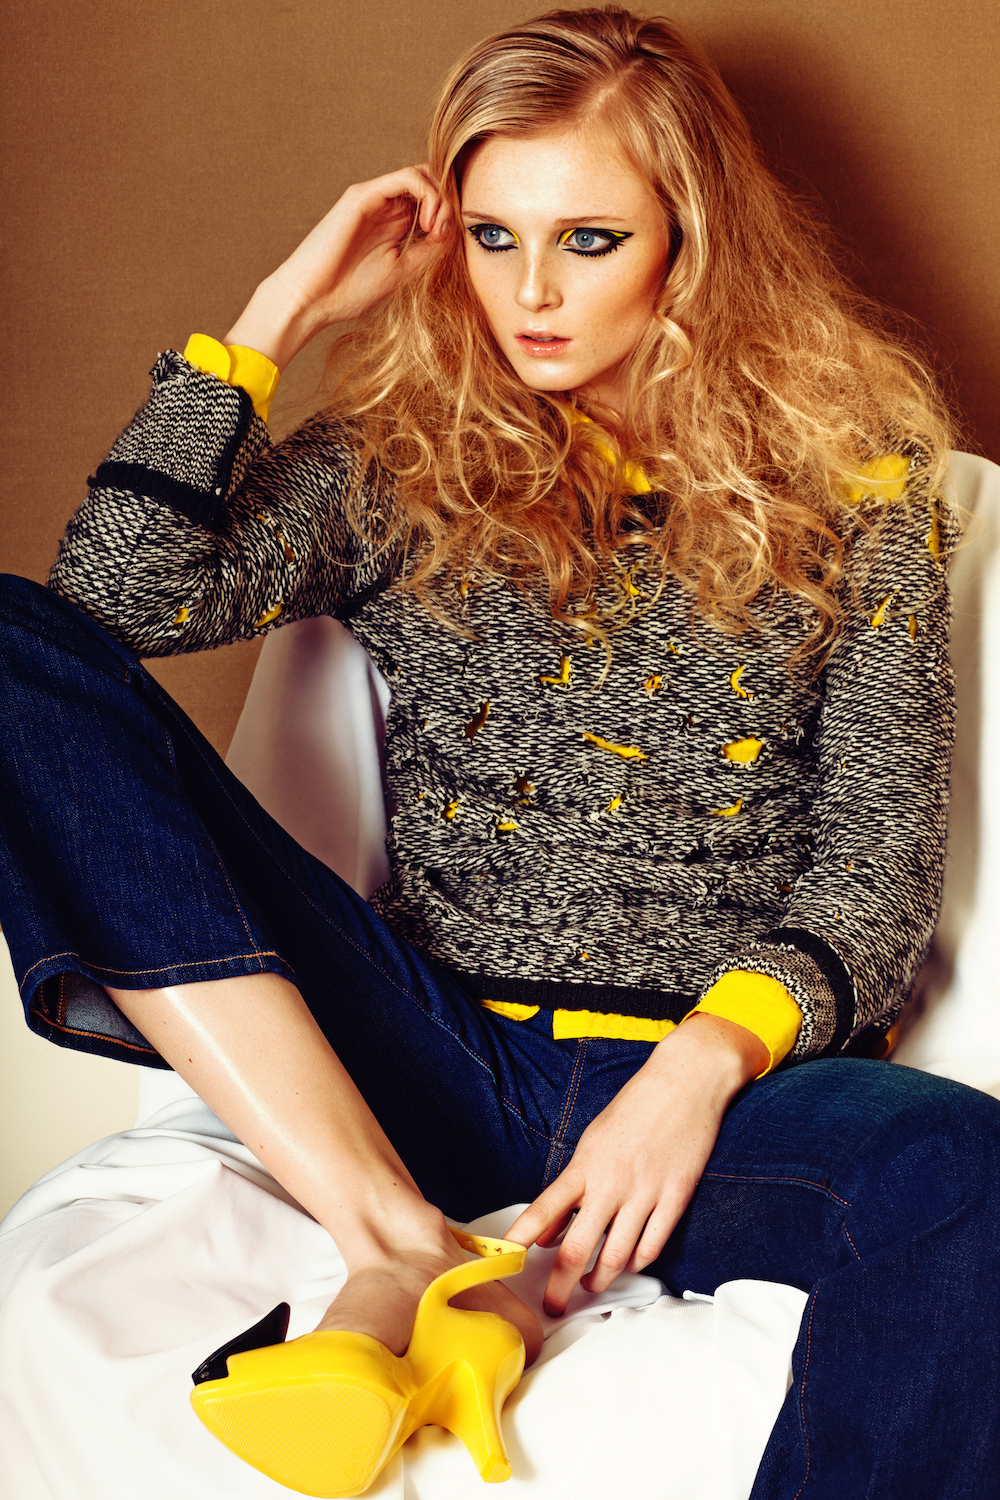 Shirt and Jeans GAP, Sweater VERO MODA, Shoes VIVIENNE WESTWARD for MELISSA